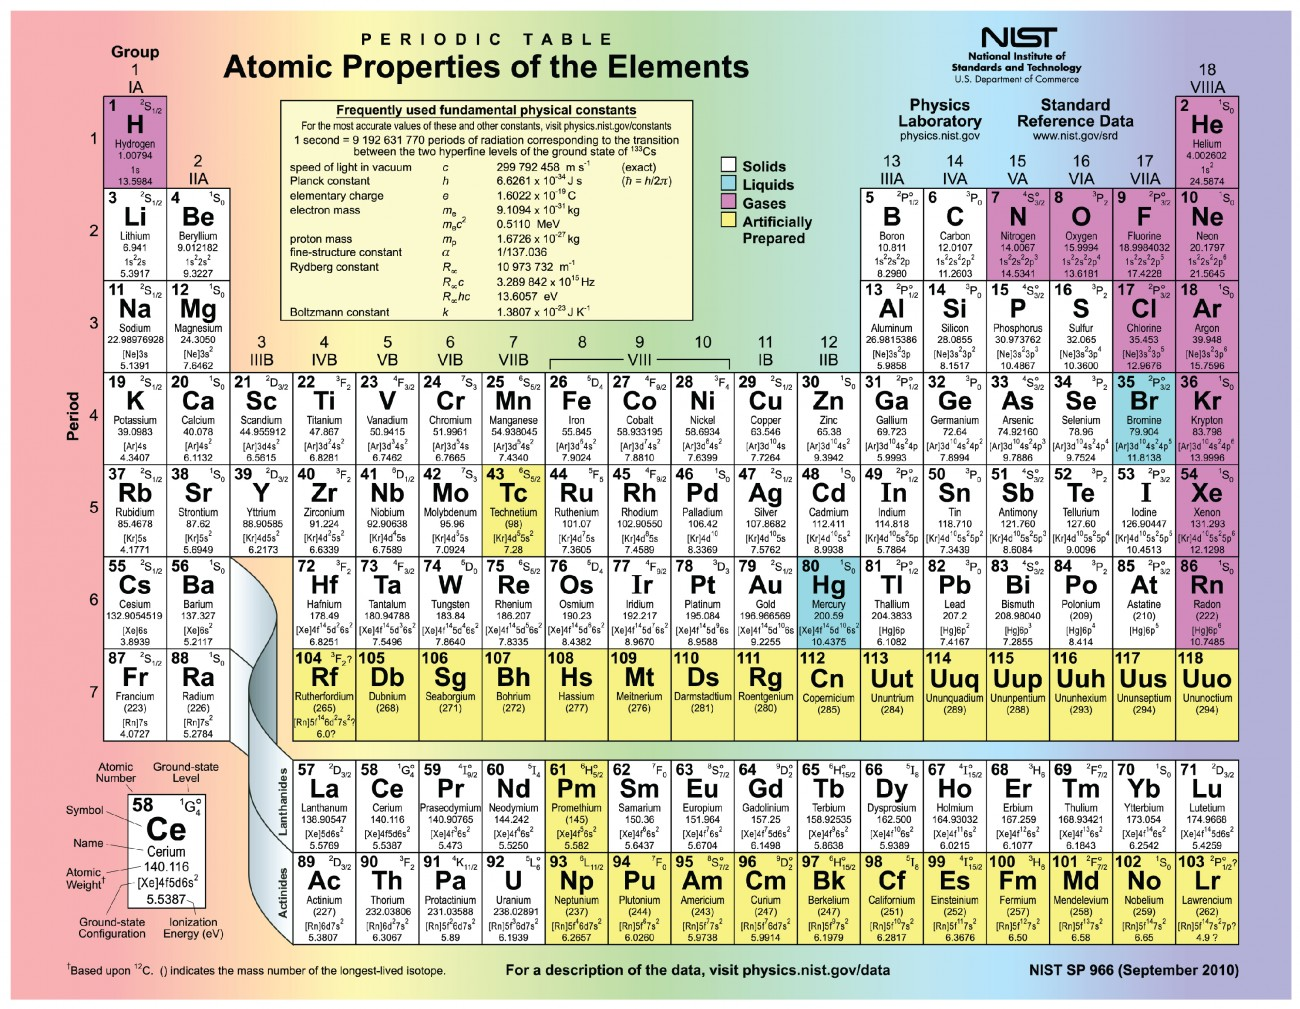 Periodic Table Of Elements Showing Mass Number And Atomic